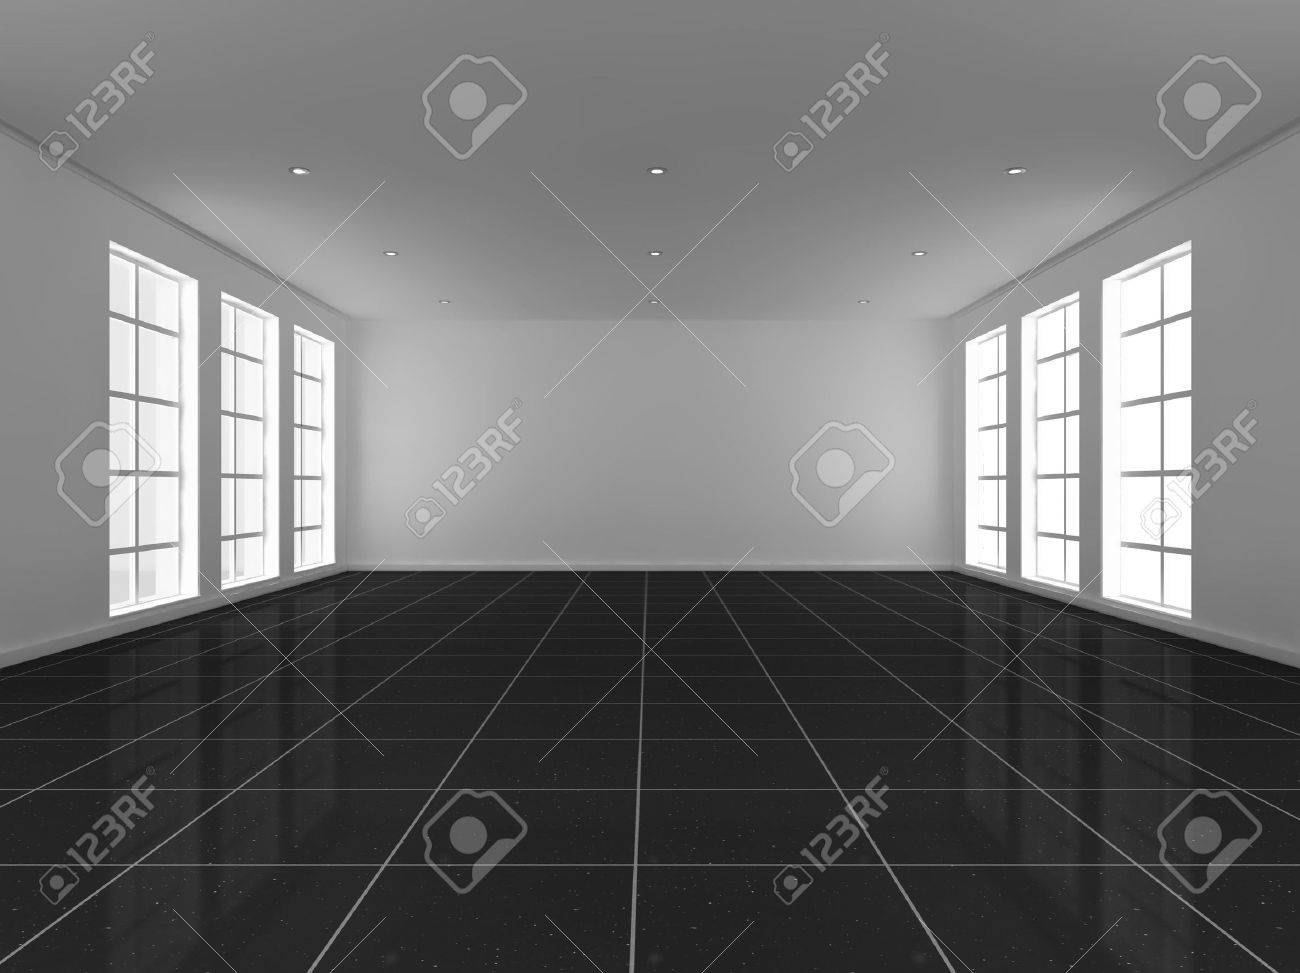 Empty living room with large windows can be as background stock - Empty Living Room With Large Windows Can Be As Background Stock Empty Room 3d Illustration Download